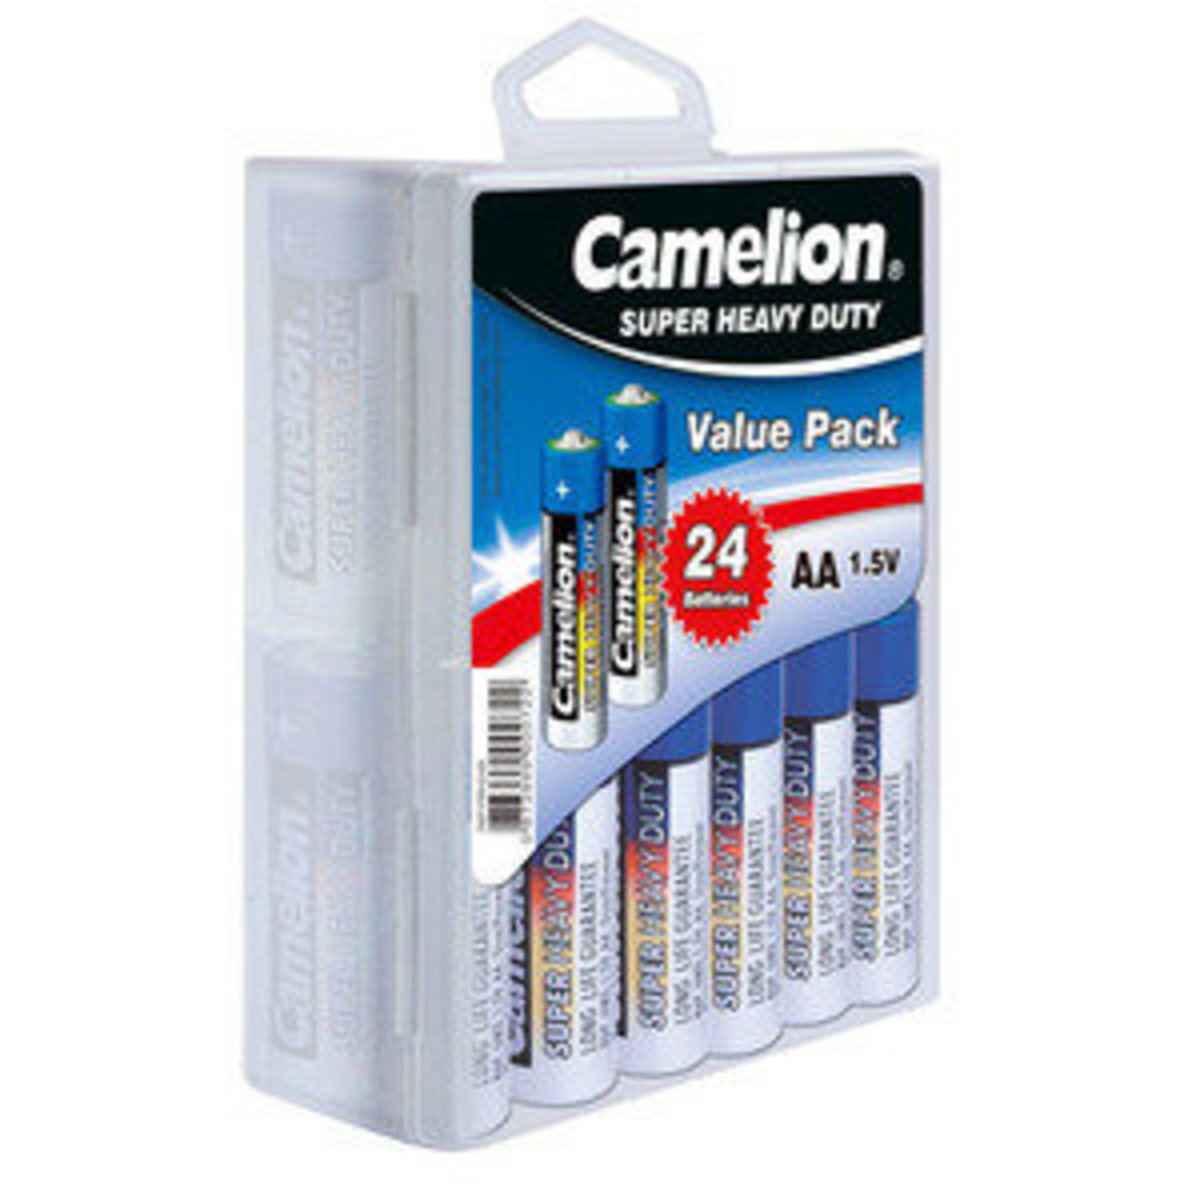 CameliAA Batery (24 value pack)